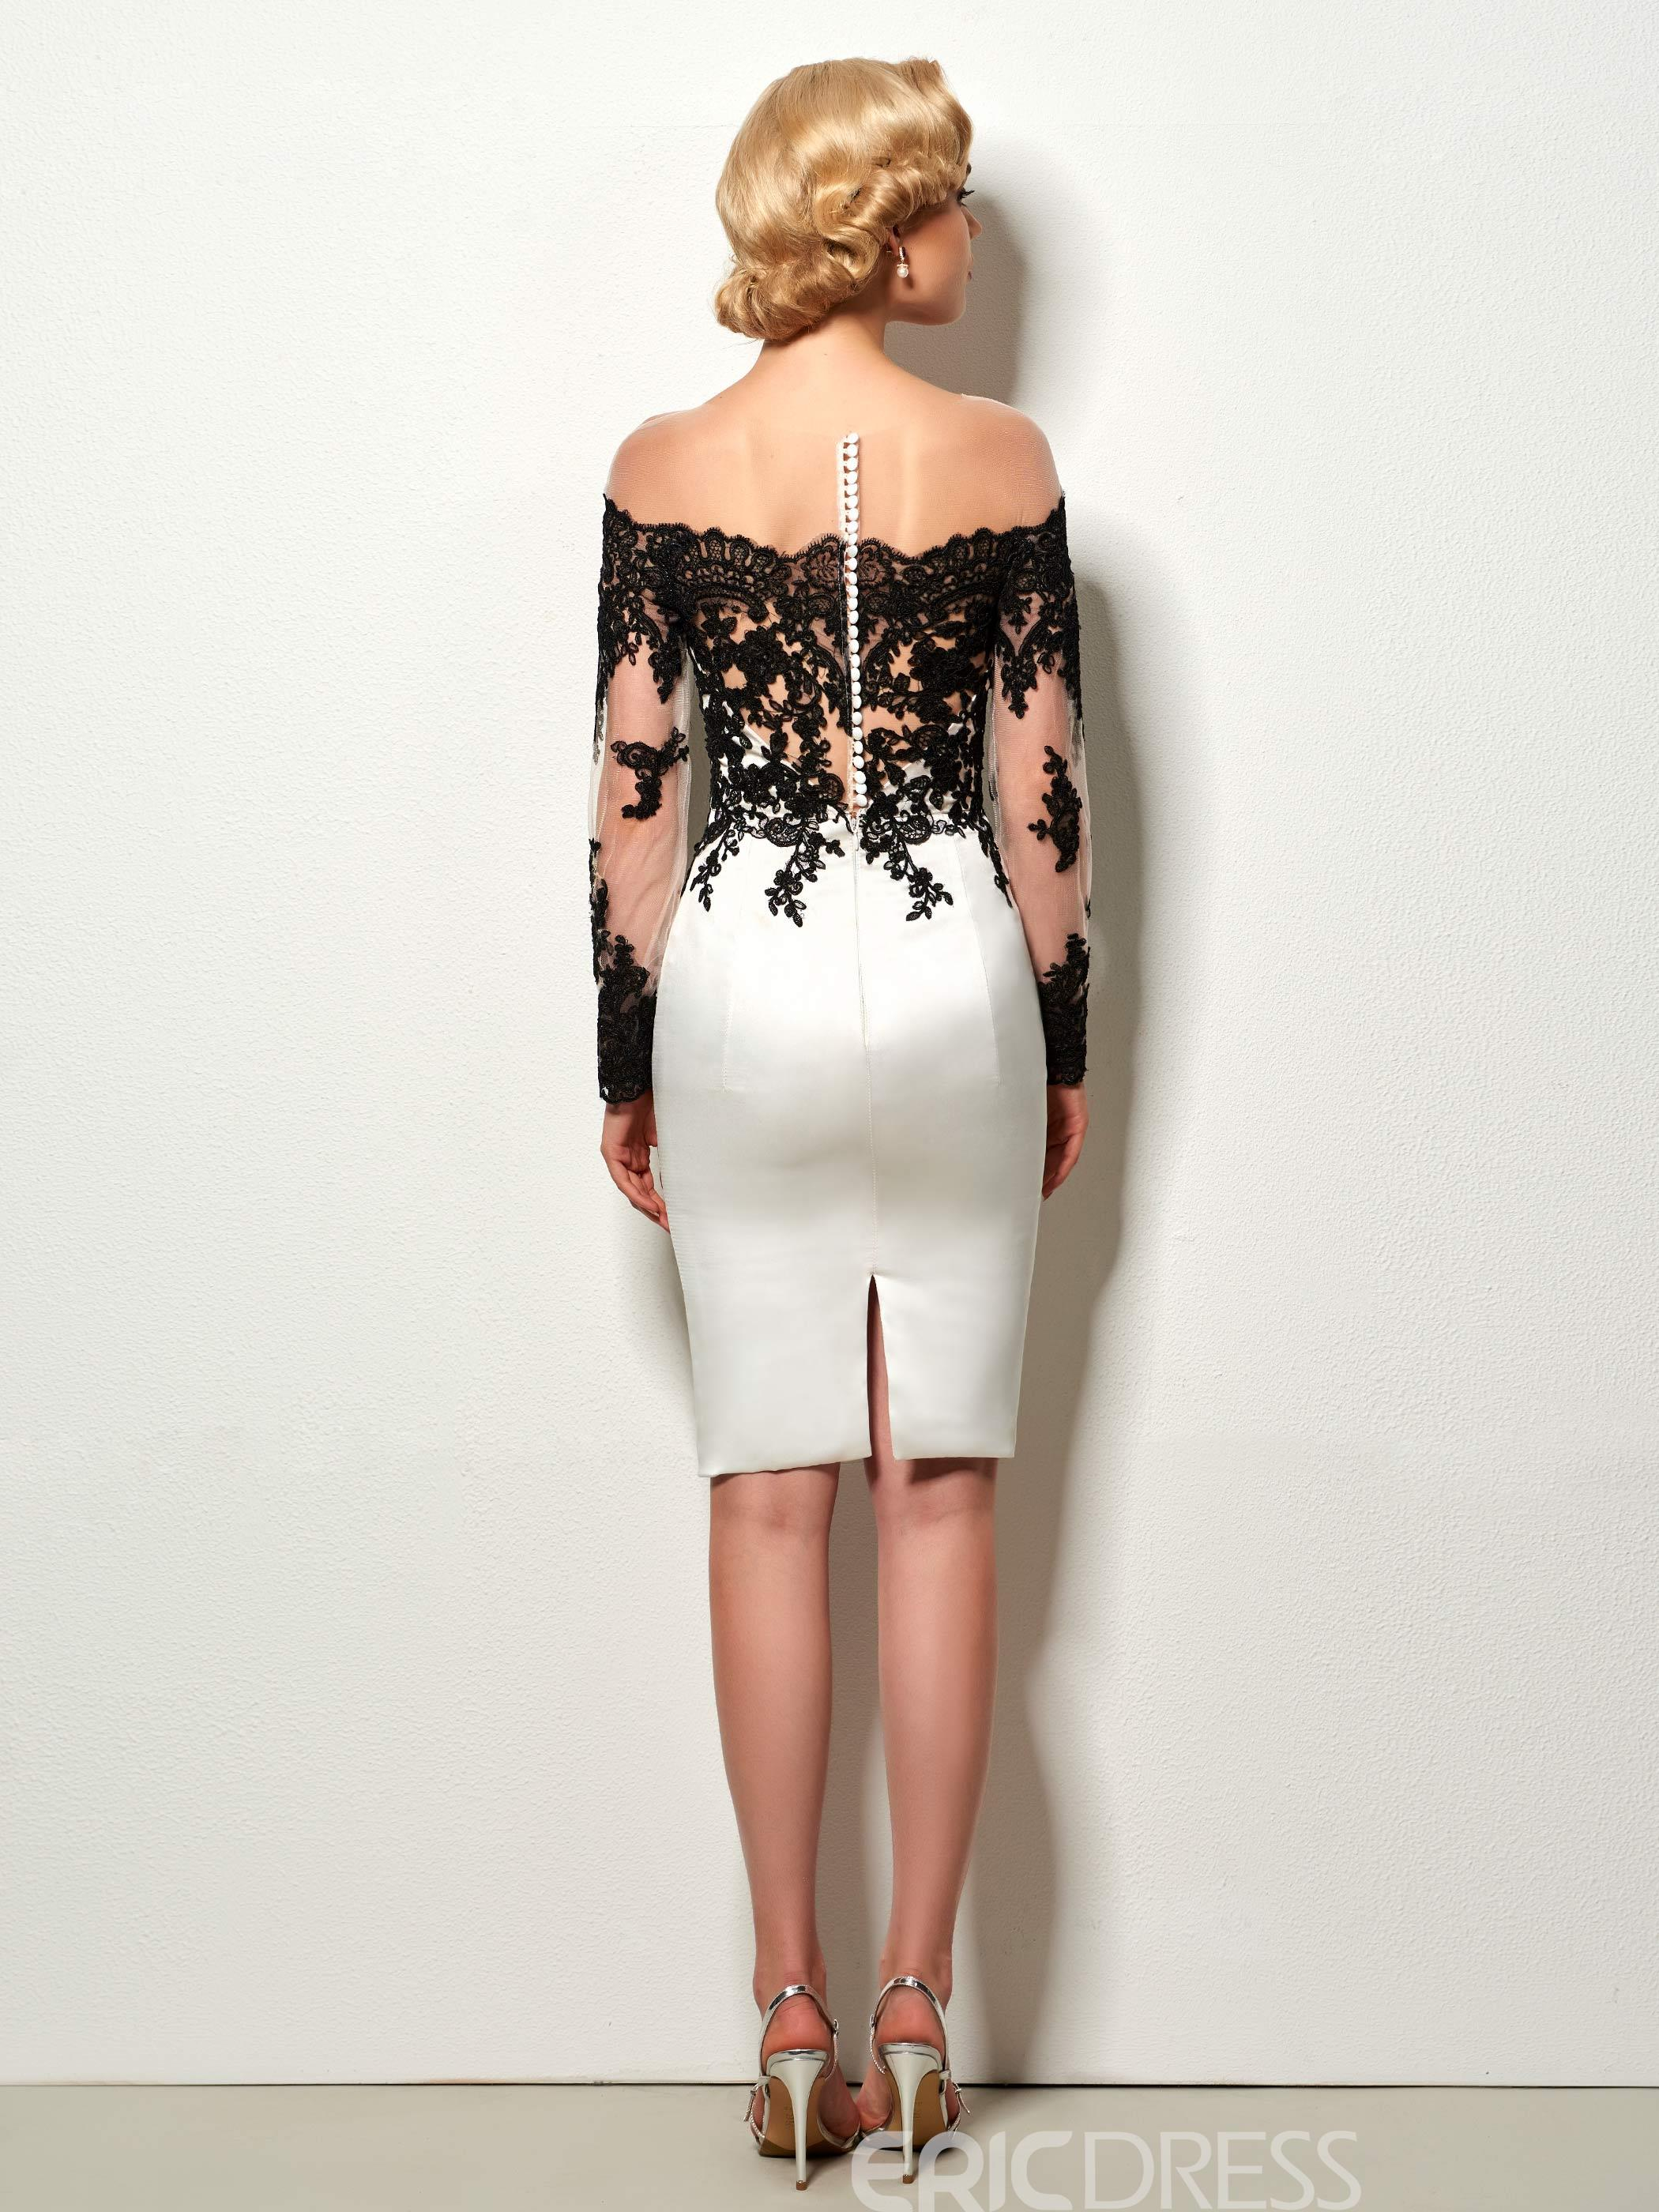 Ericdress Sexy Sheath Lace Applique Short Cocktail Dress With Long Sleeve